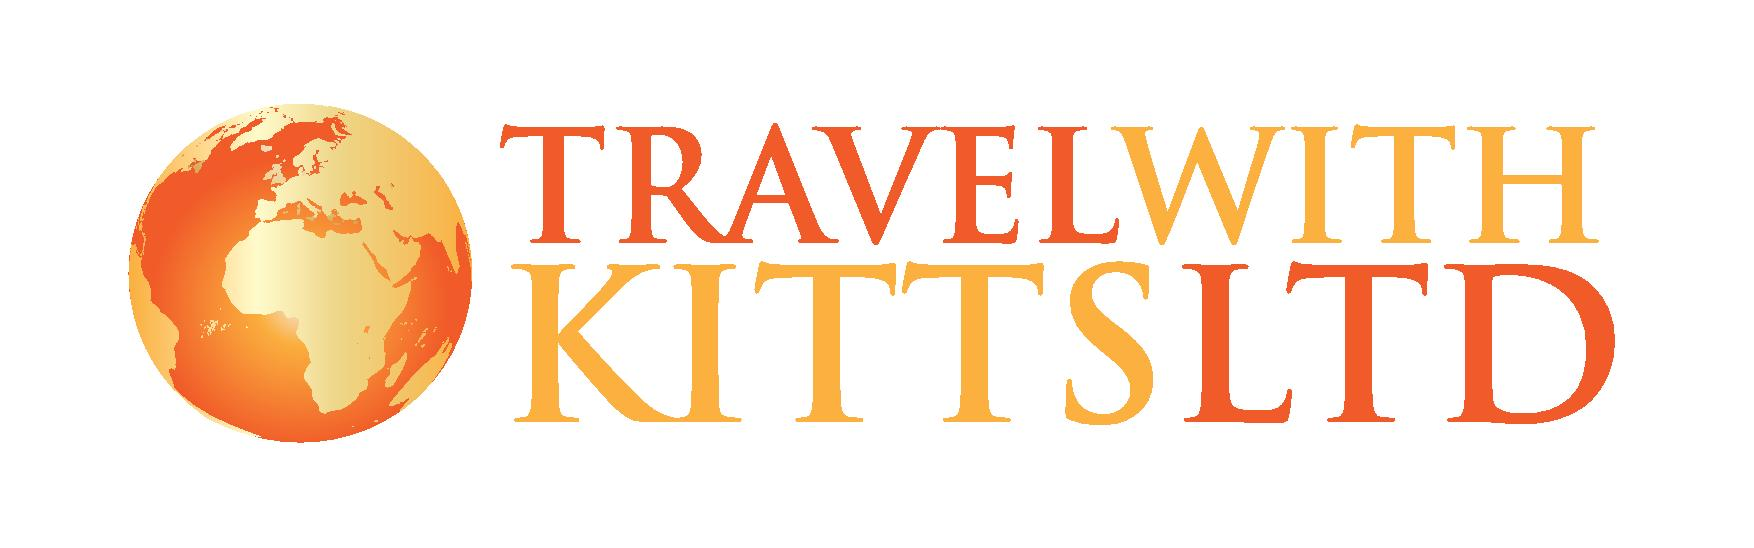 Are you looking for your next job role in travel?